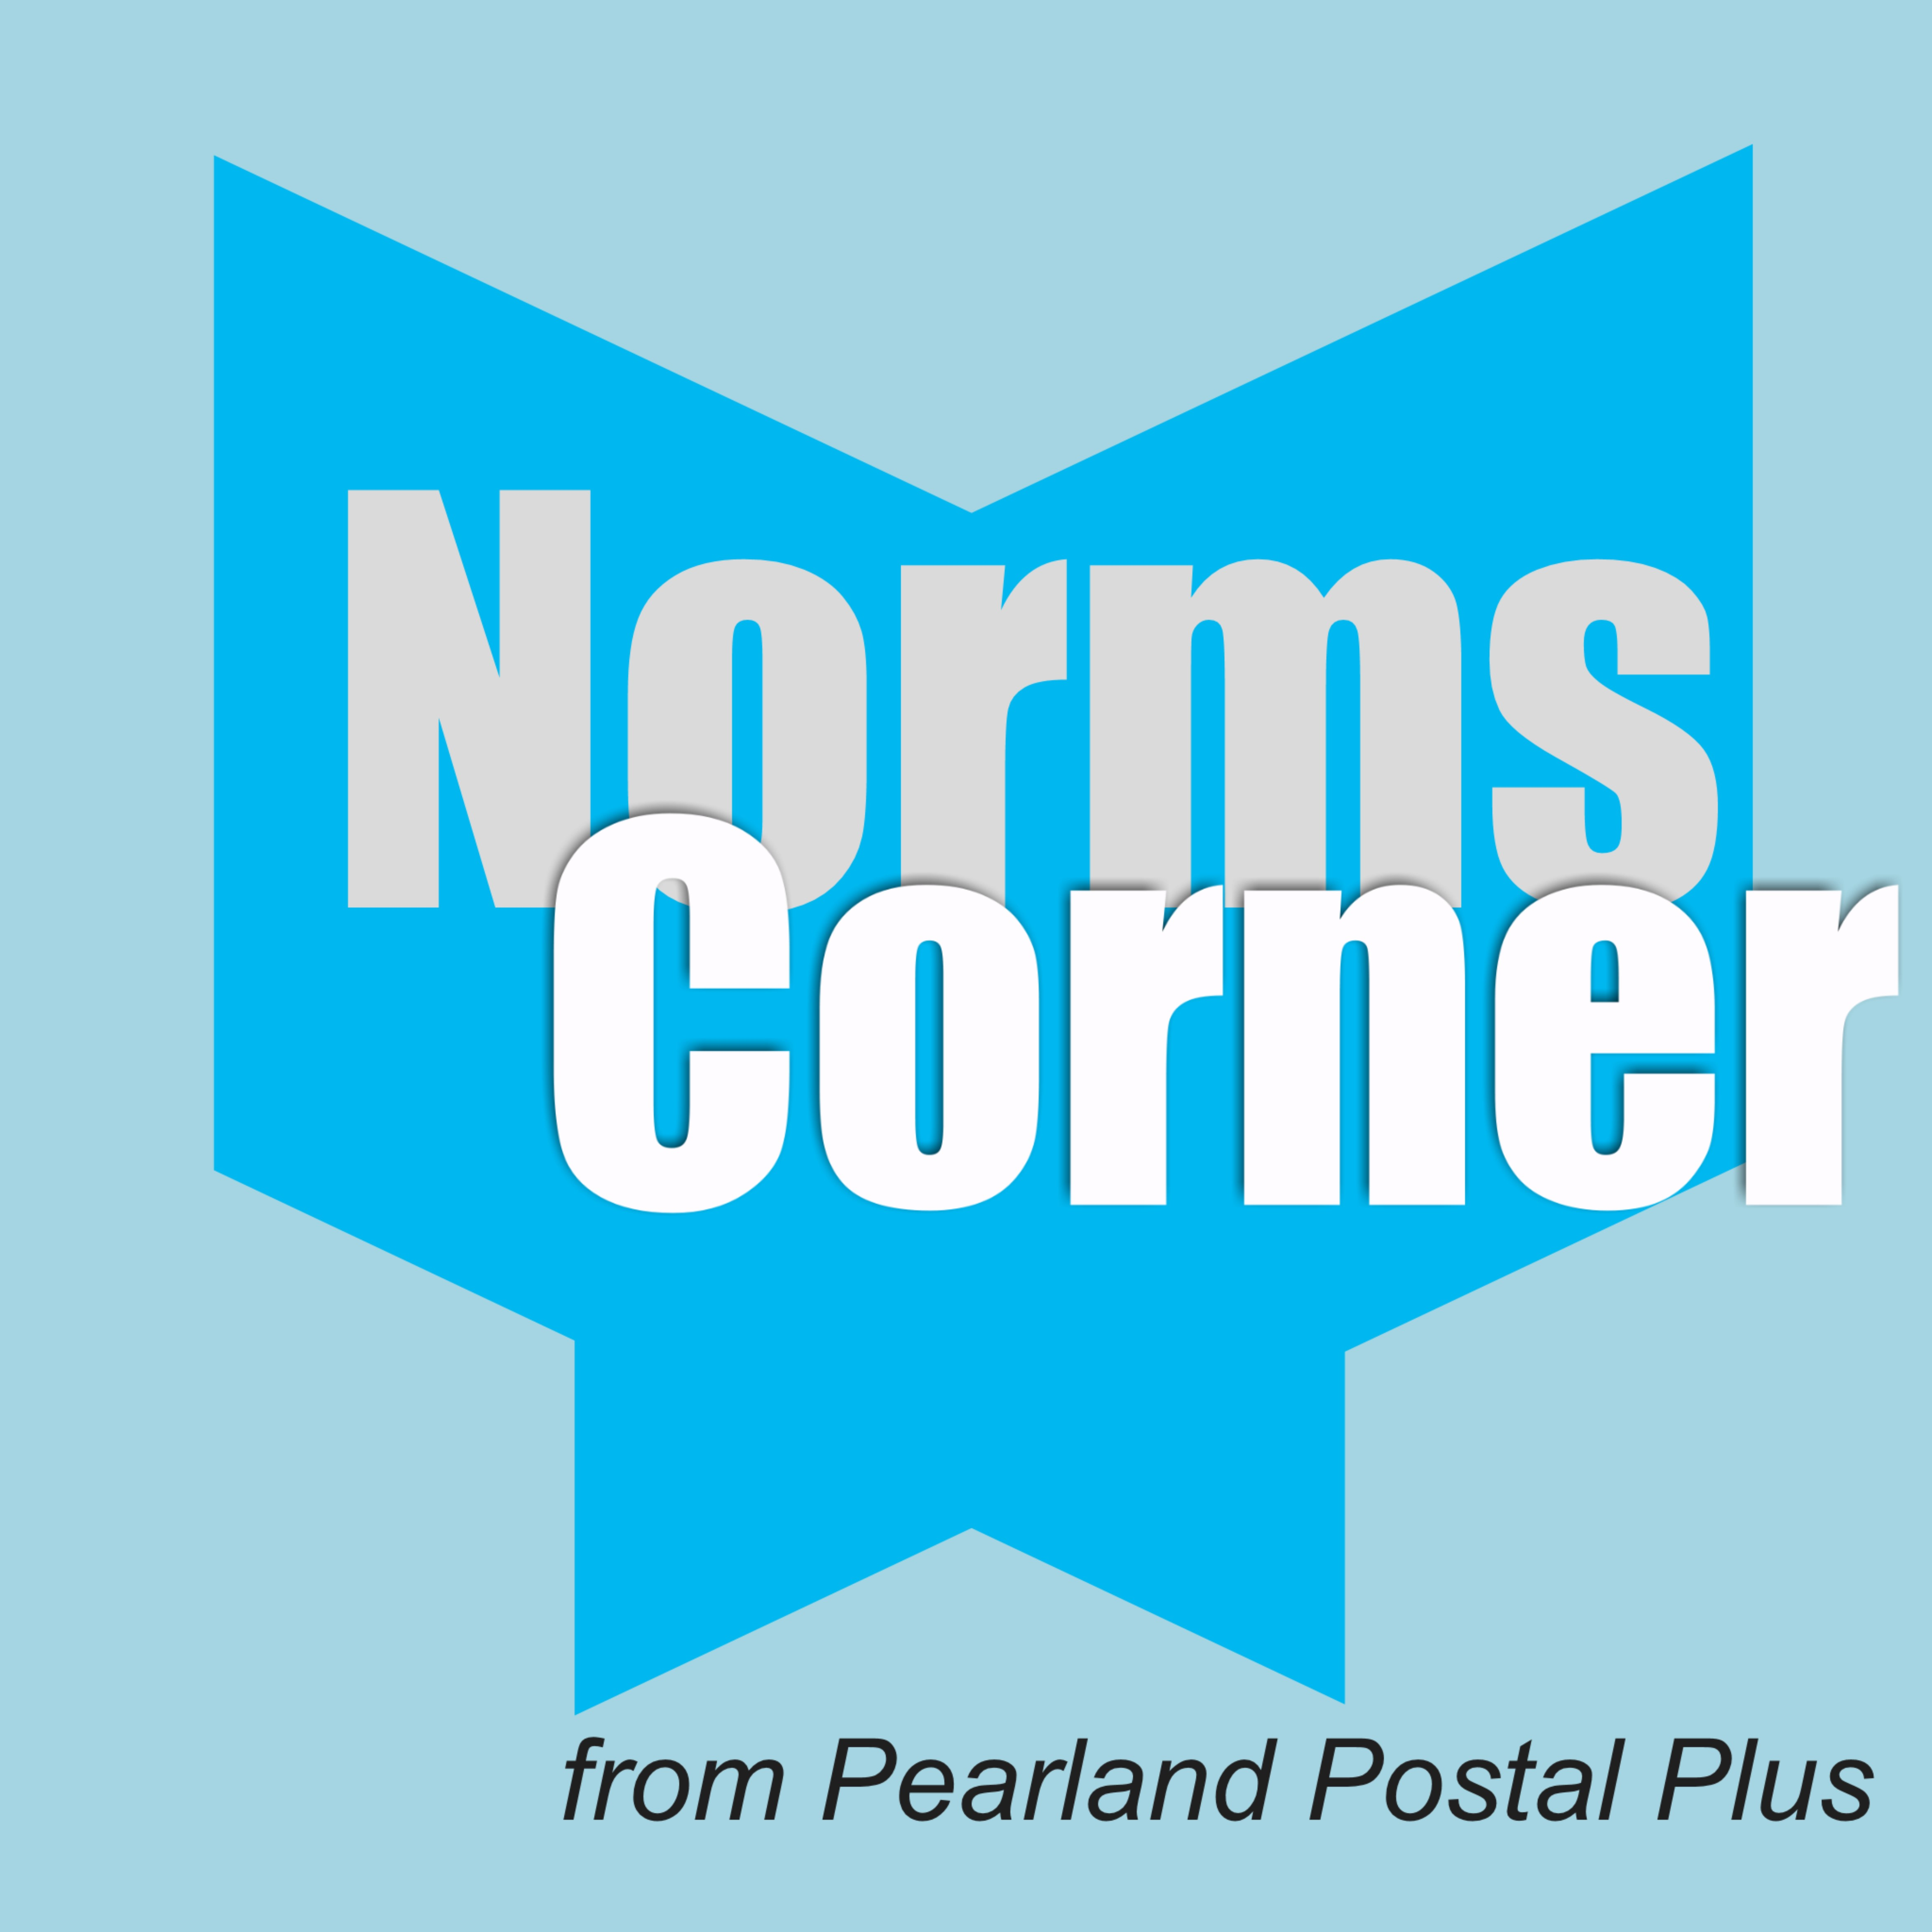 Pearland Postal Plus Norm's Blog